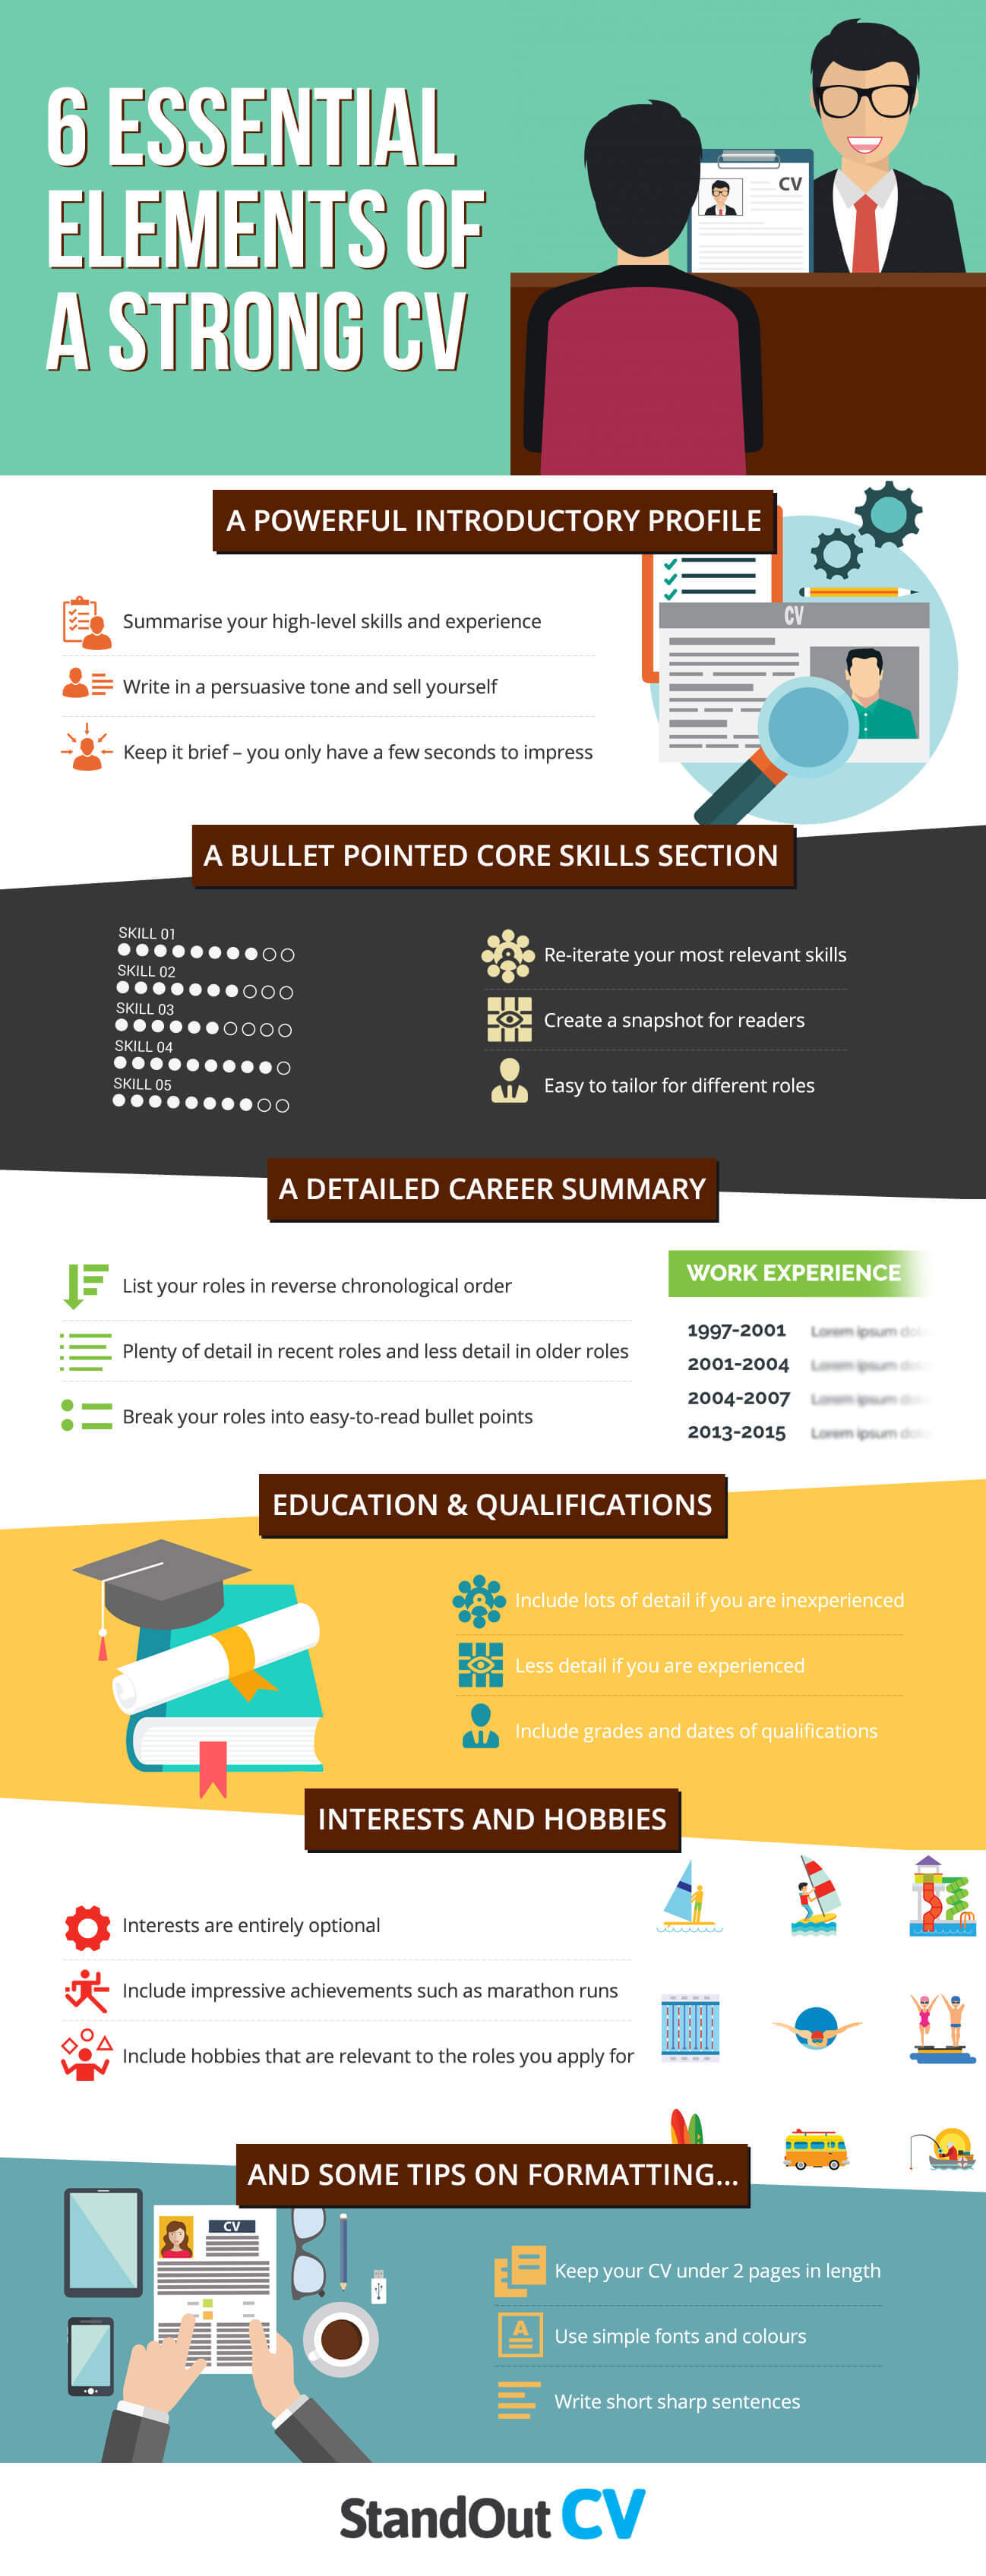 6 Essential Elements of a Strong CV Infographic